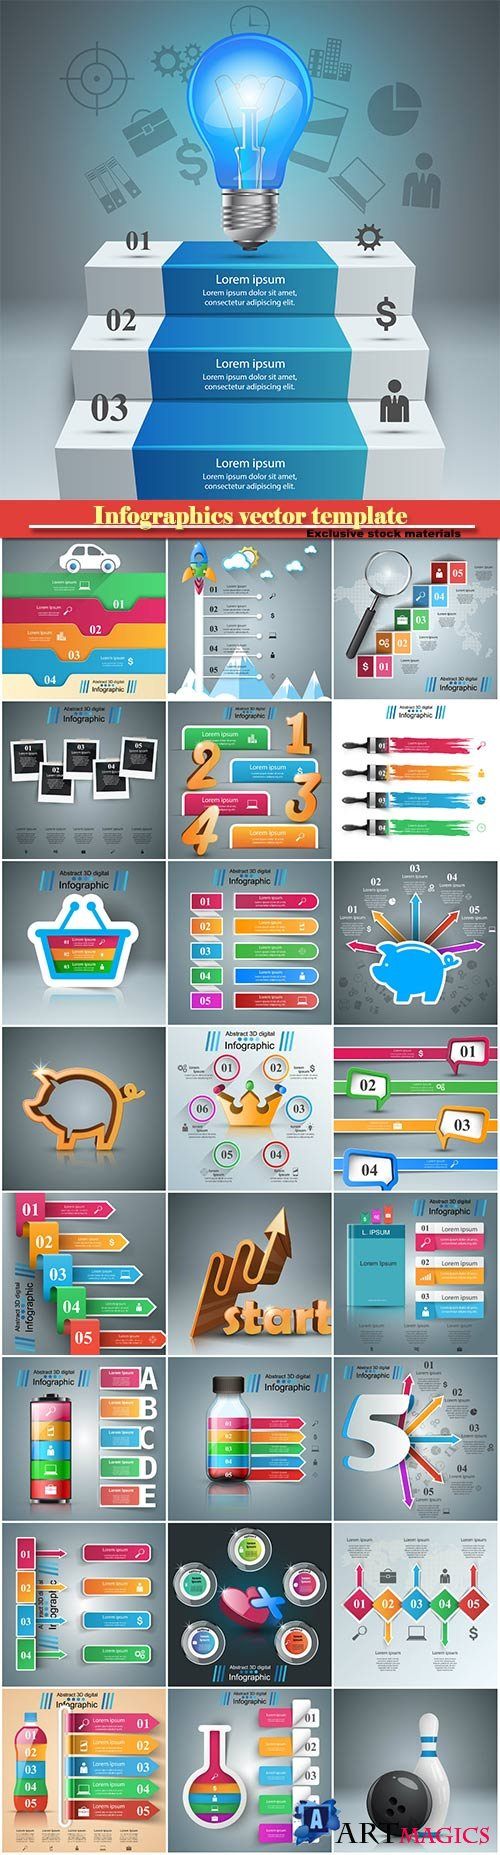 Infographics vector template for business presentations or information banner # 14